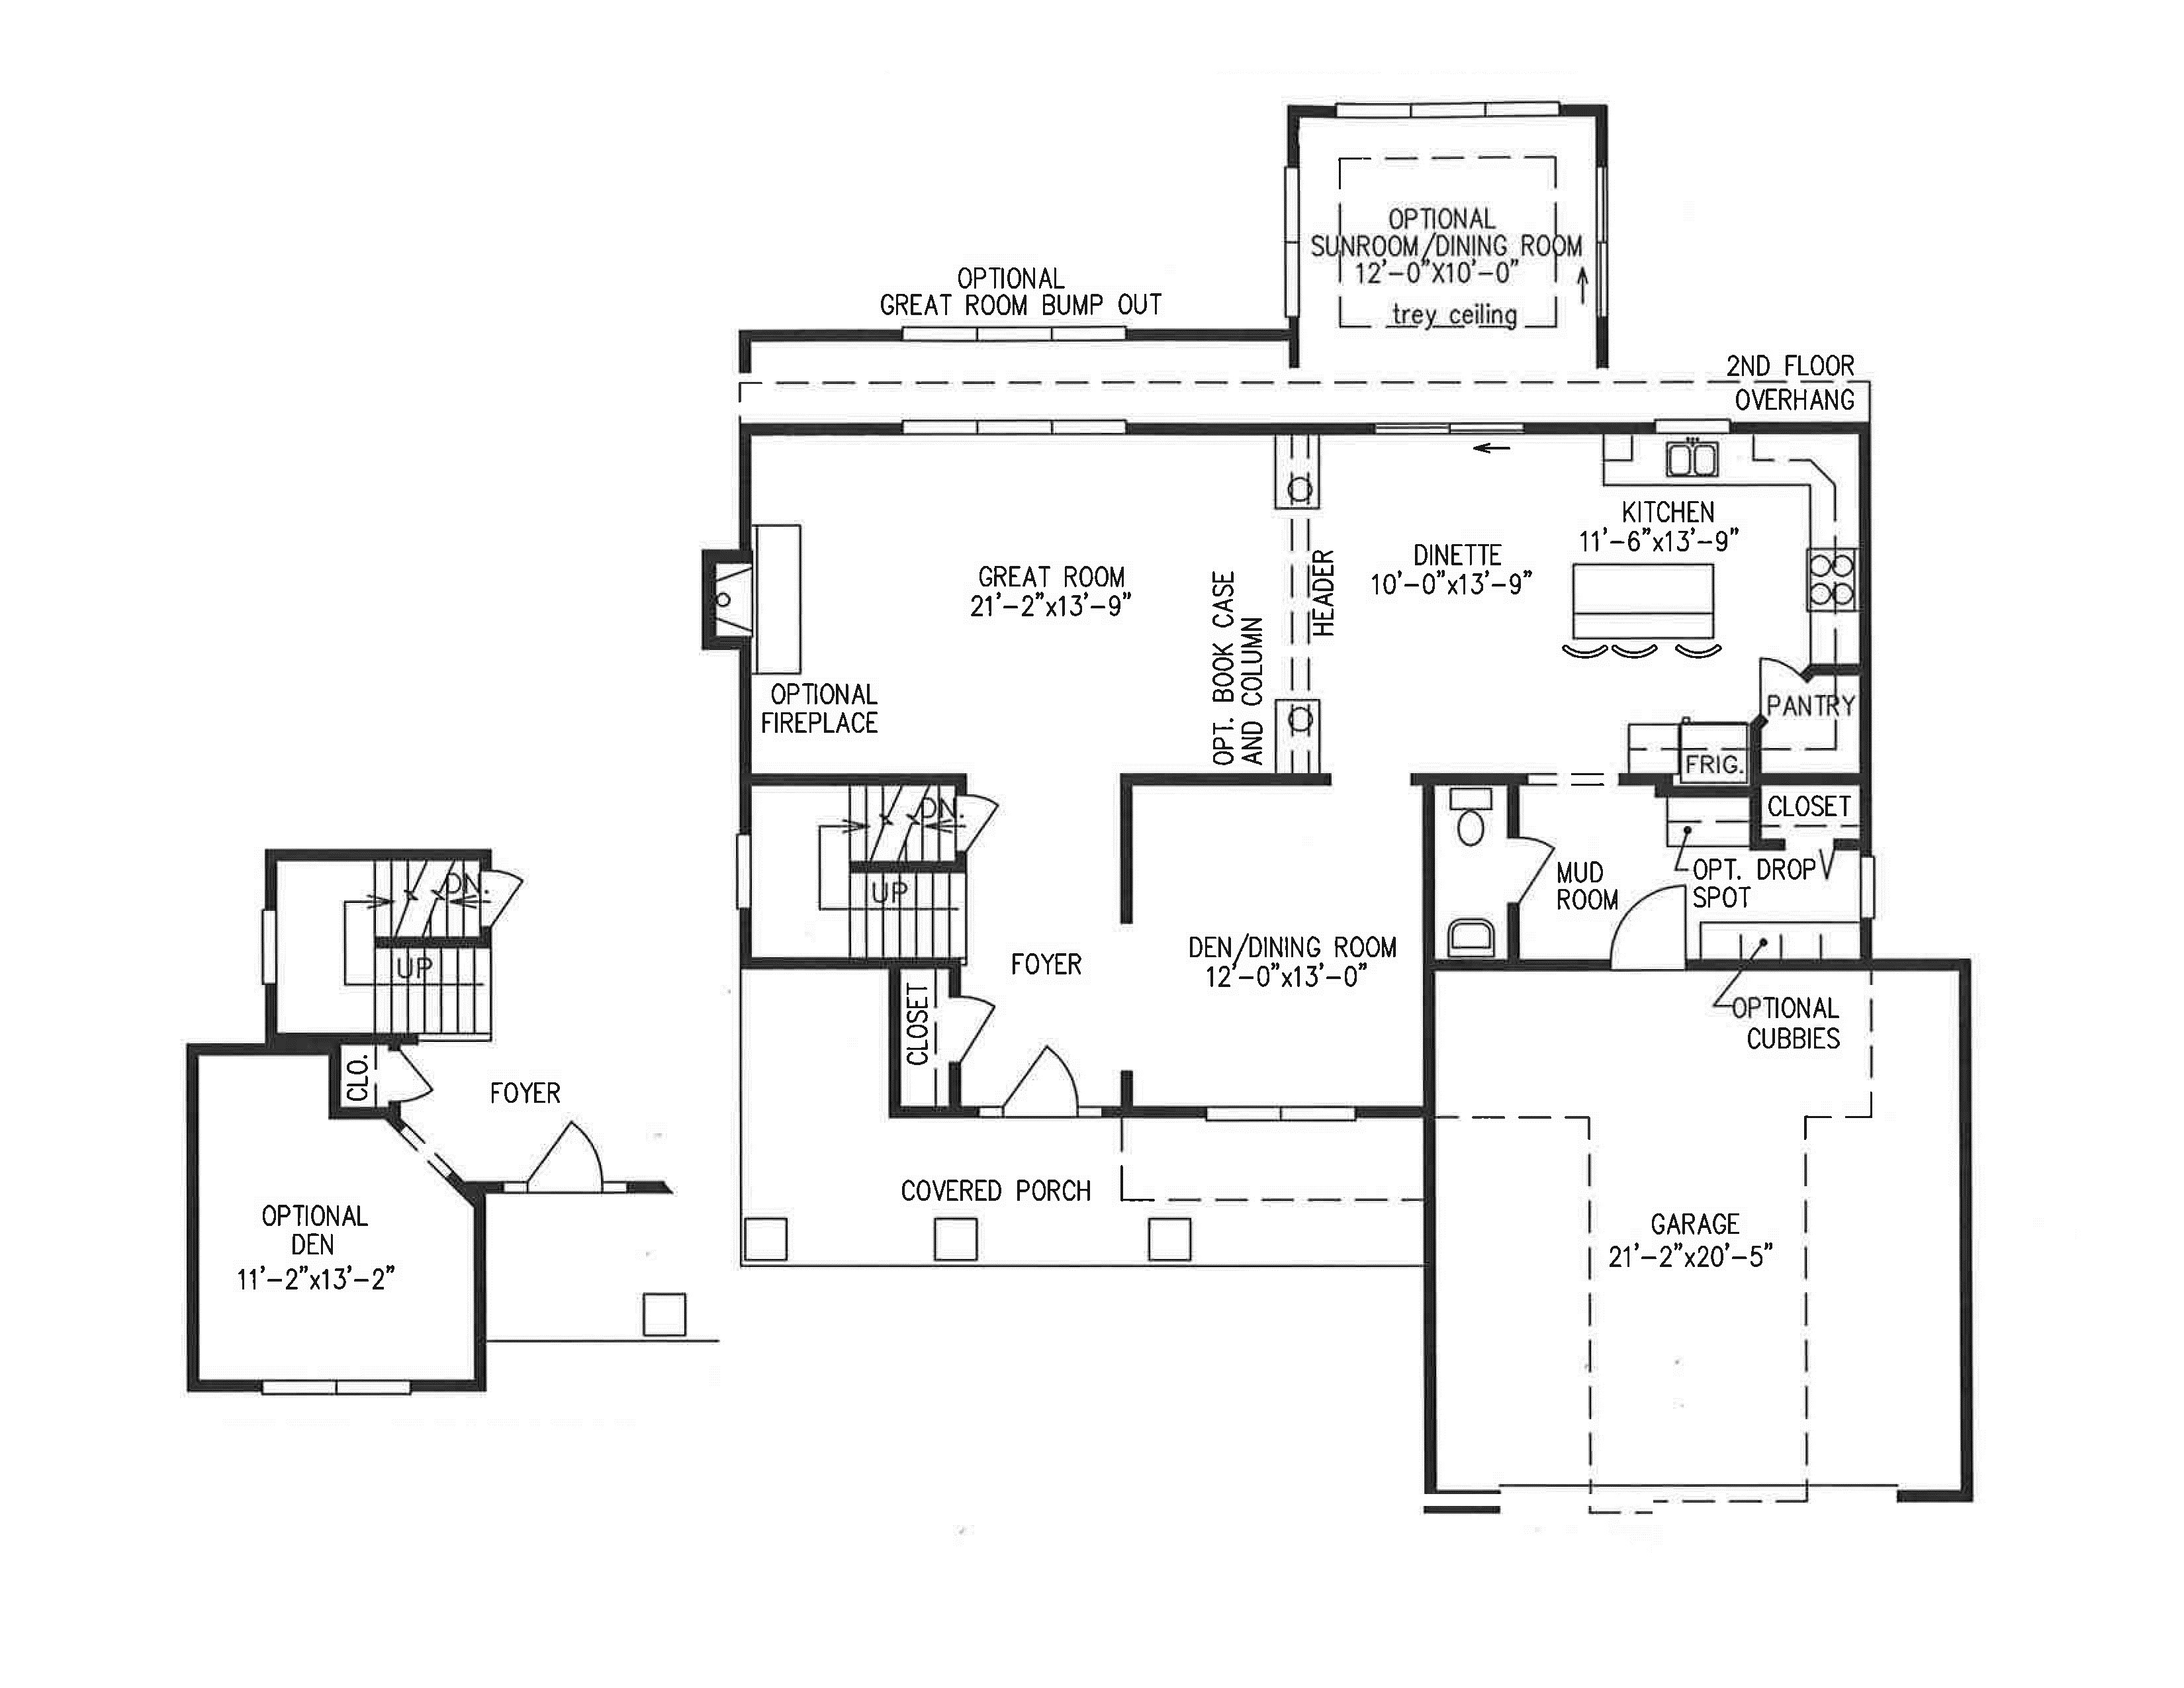 Ruskin 1st Floor Plan Without Dimensions